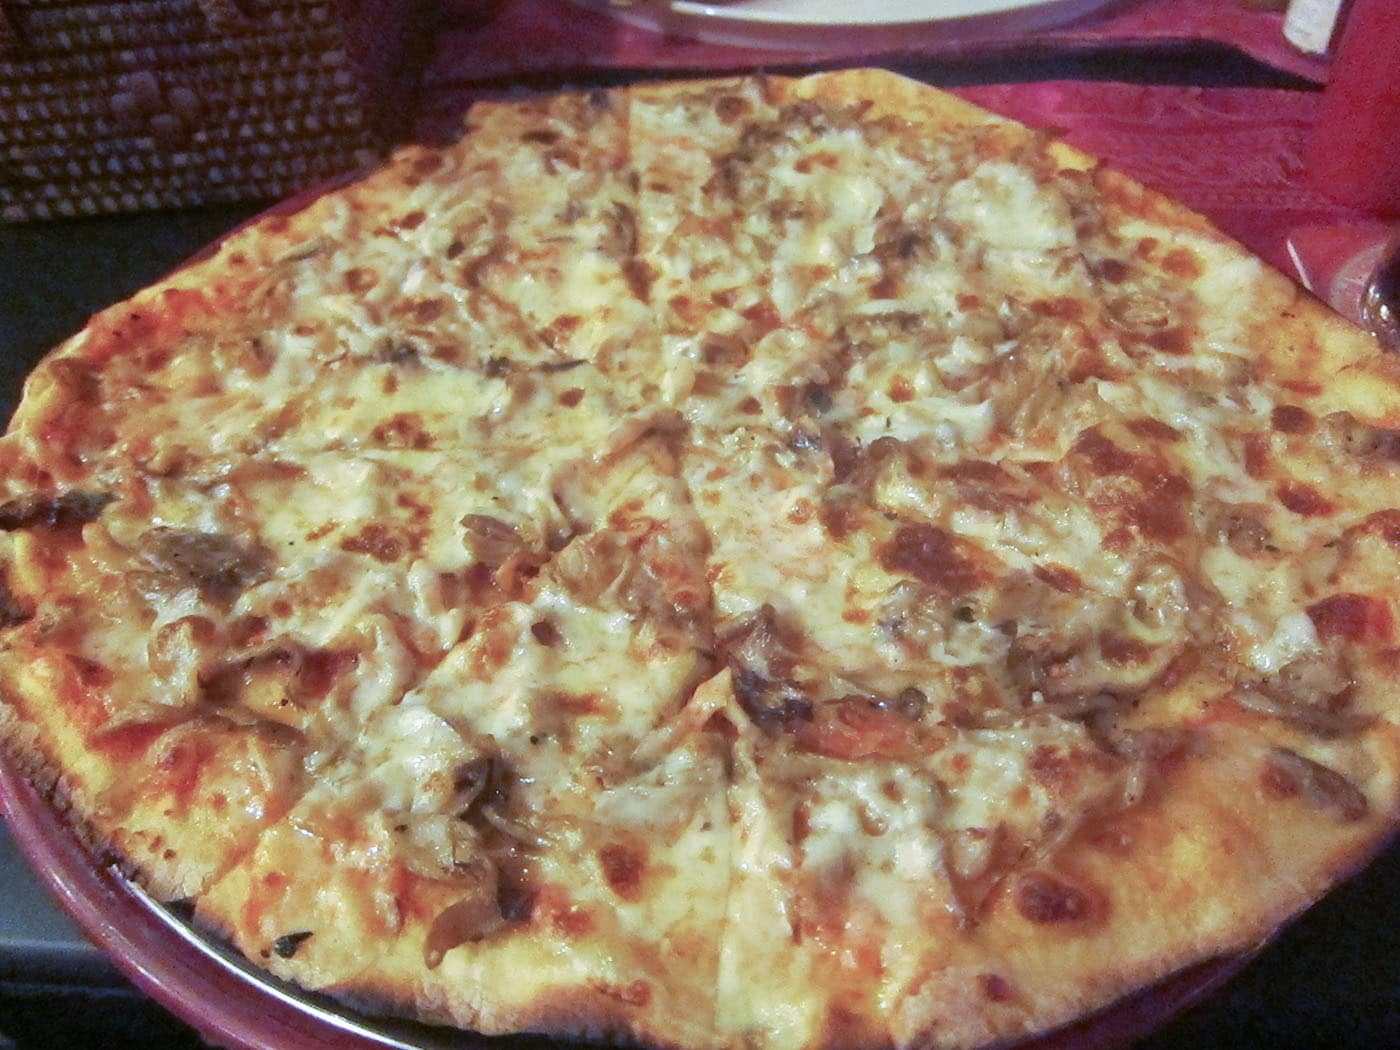 Mushroom pizza in Siem Reap, Cambodia. Not the happy kind of mushroom.